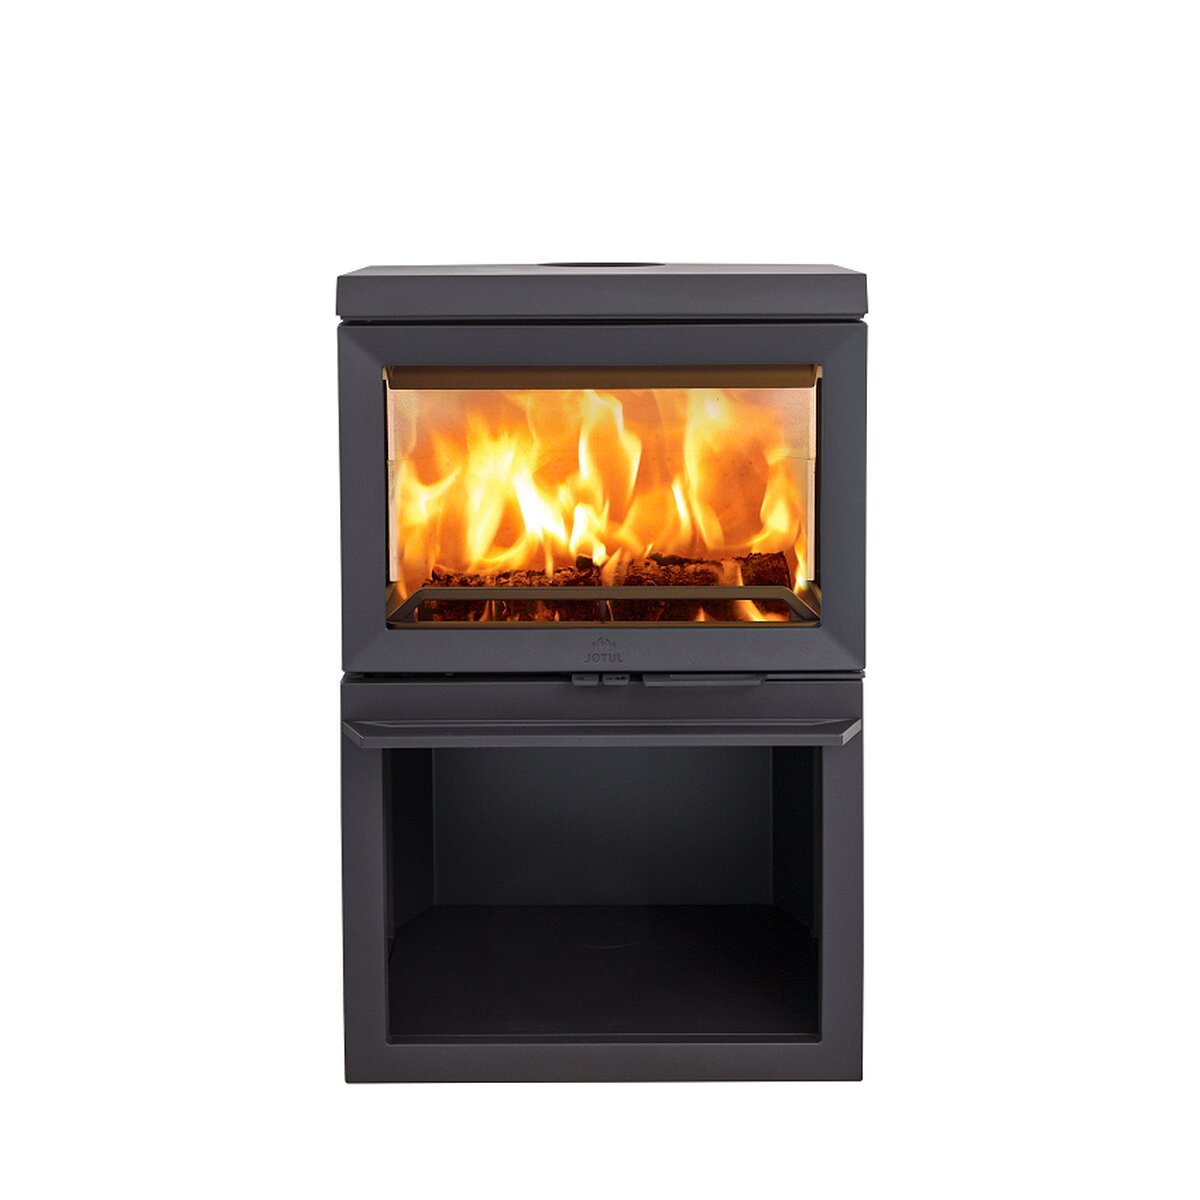 kaminofen gussofen jotul f 520 mit i 520 einsatz 3 scheiben 7 kw von jotul a s. Black Bedroom Furniture Sets. Home Design Ideas